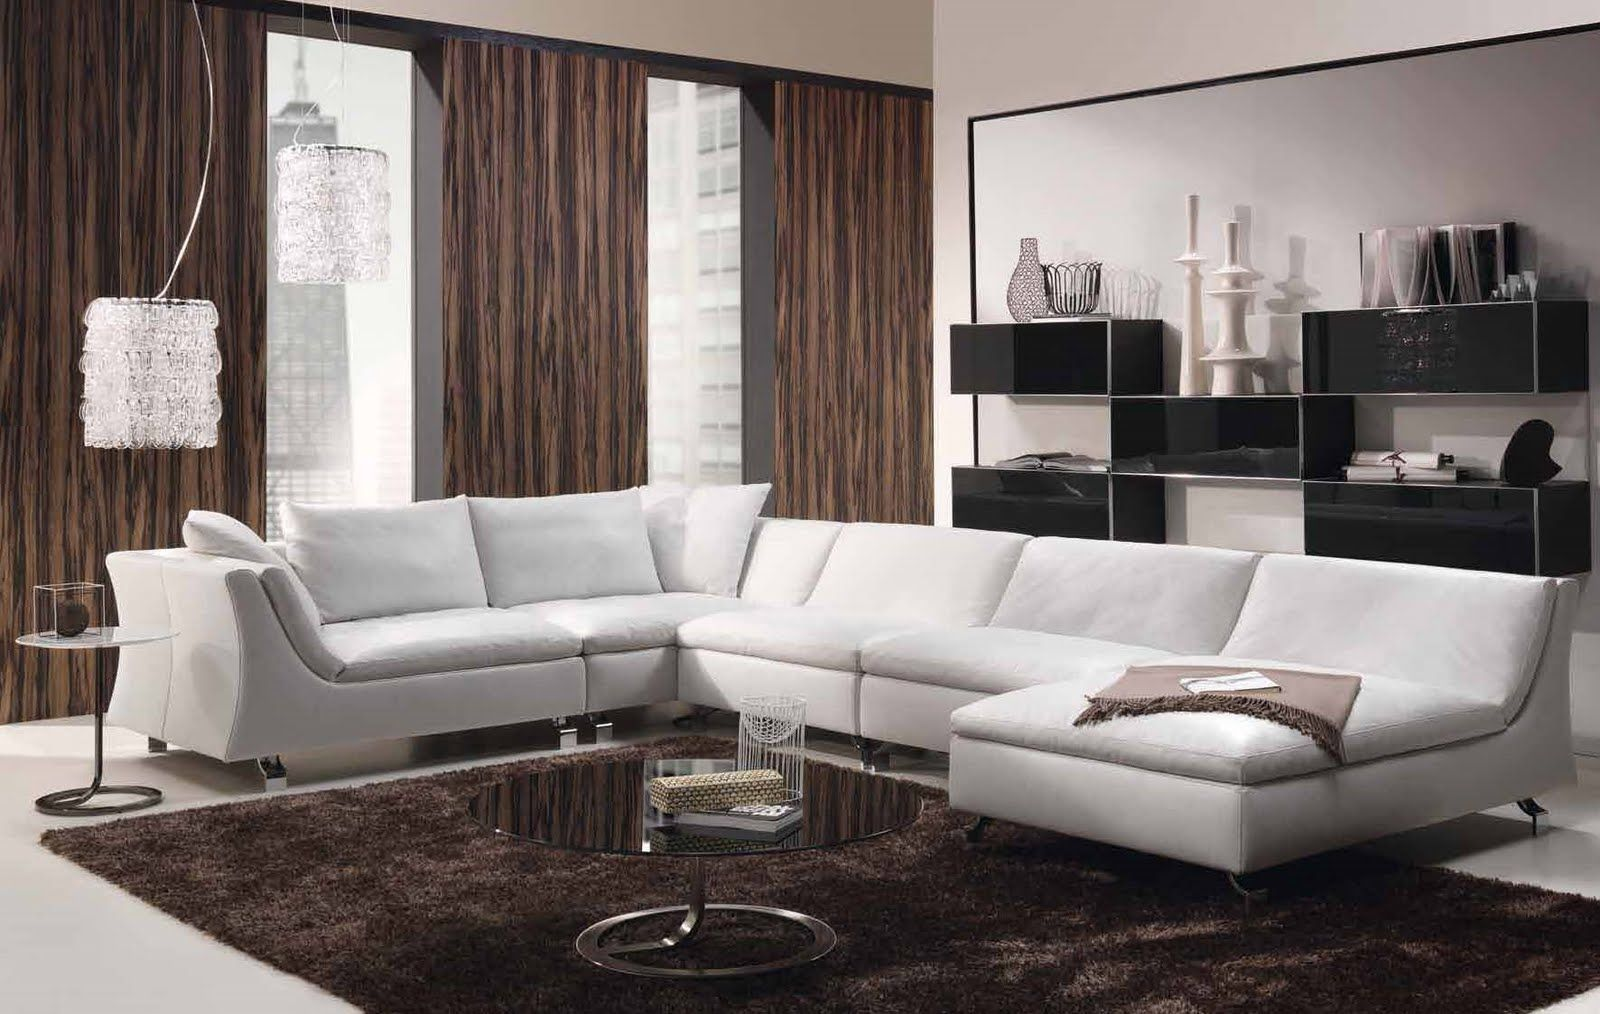 Interior Design Living Room Ideas contemporary living room interior ideas Living Room From The 1960s Red Hot Pinterest 1960s The 1960s And Living Rooms